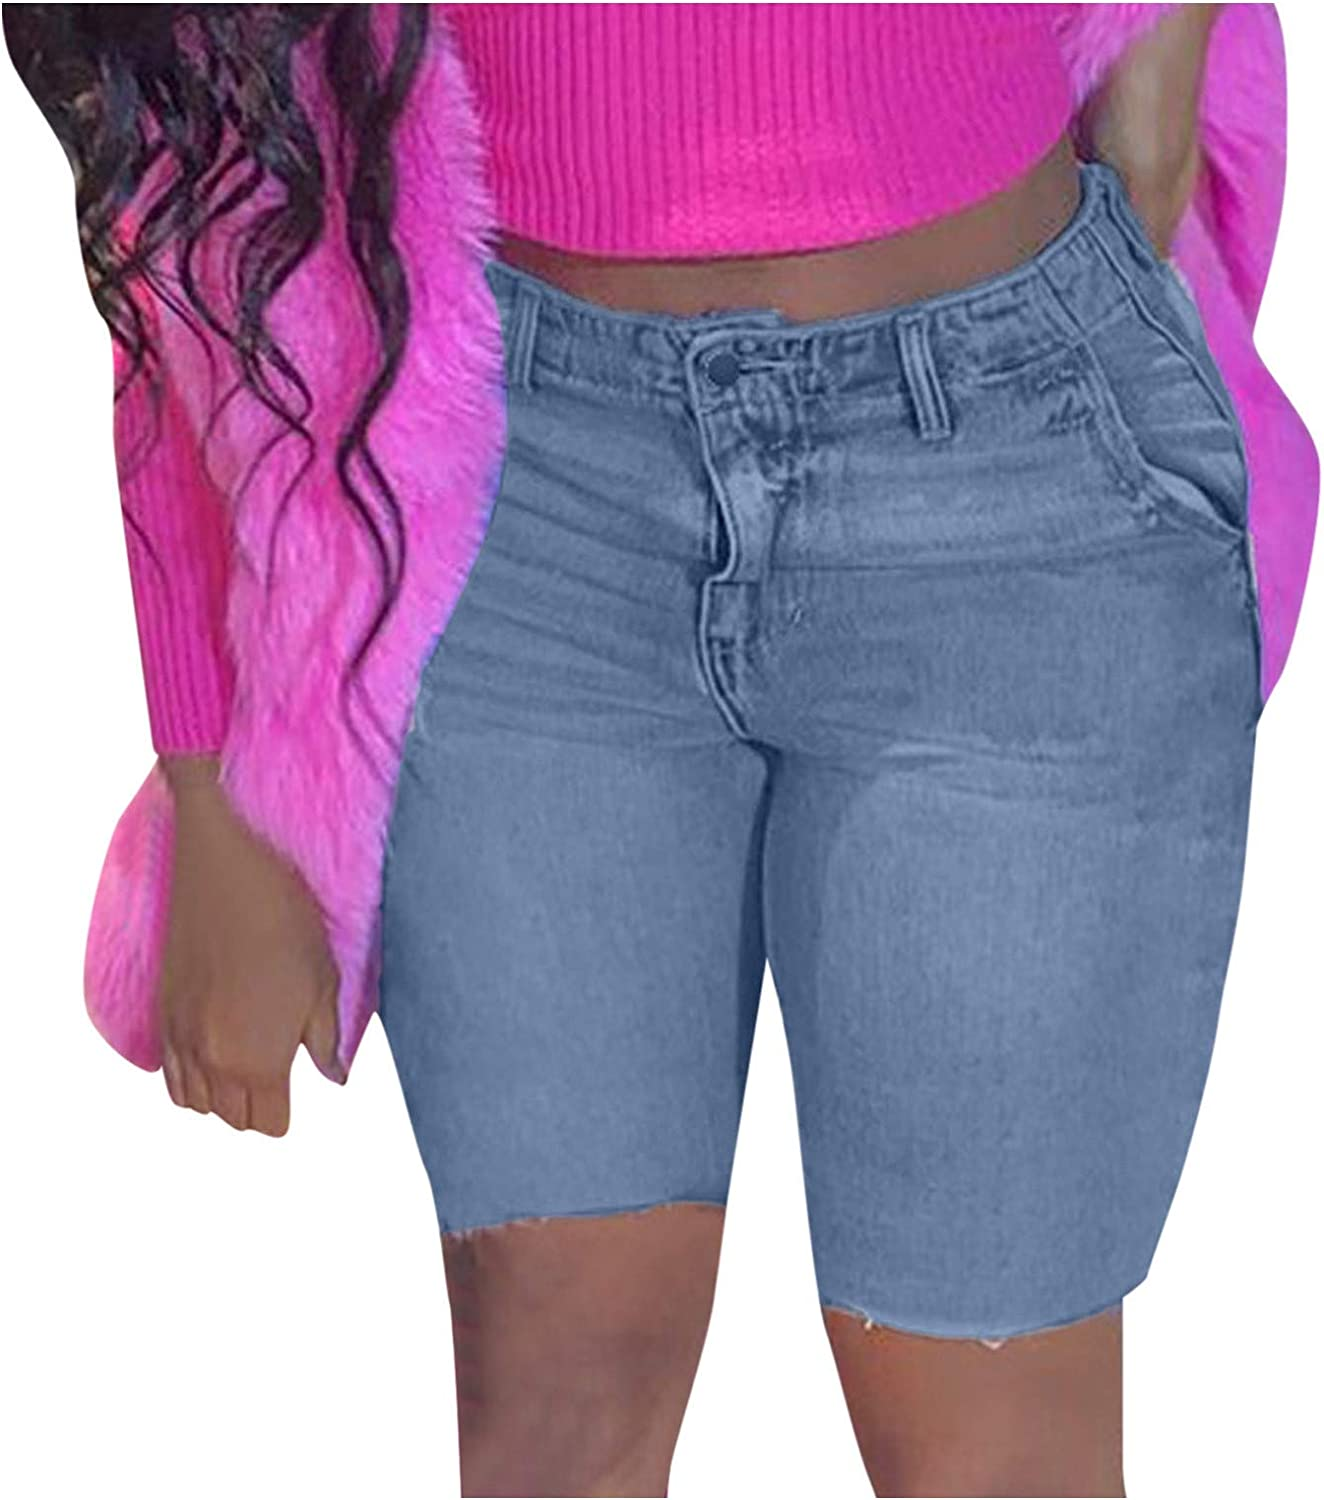 Bermuda Jean Shorts for Women Stretchy High Waisted Plus Size Casual Summer Denim Shorts